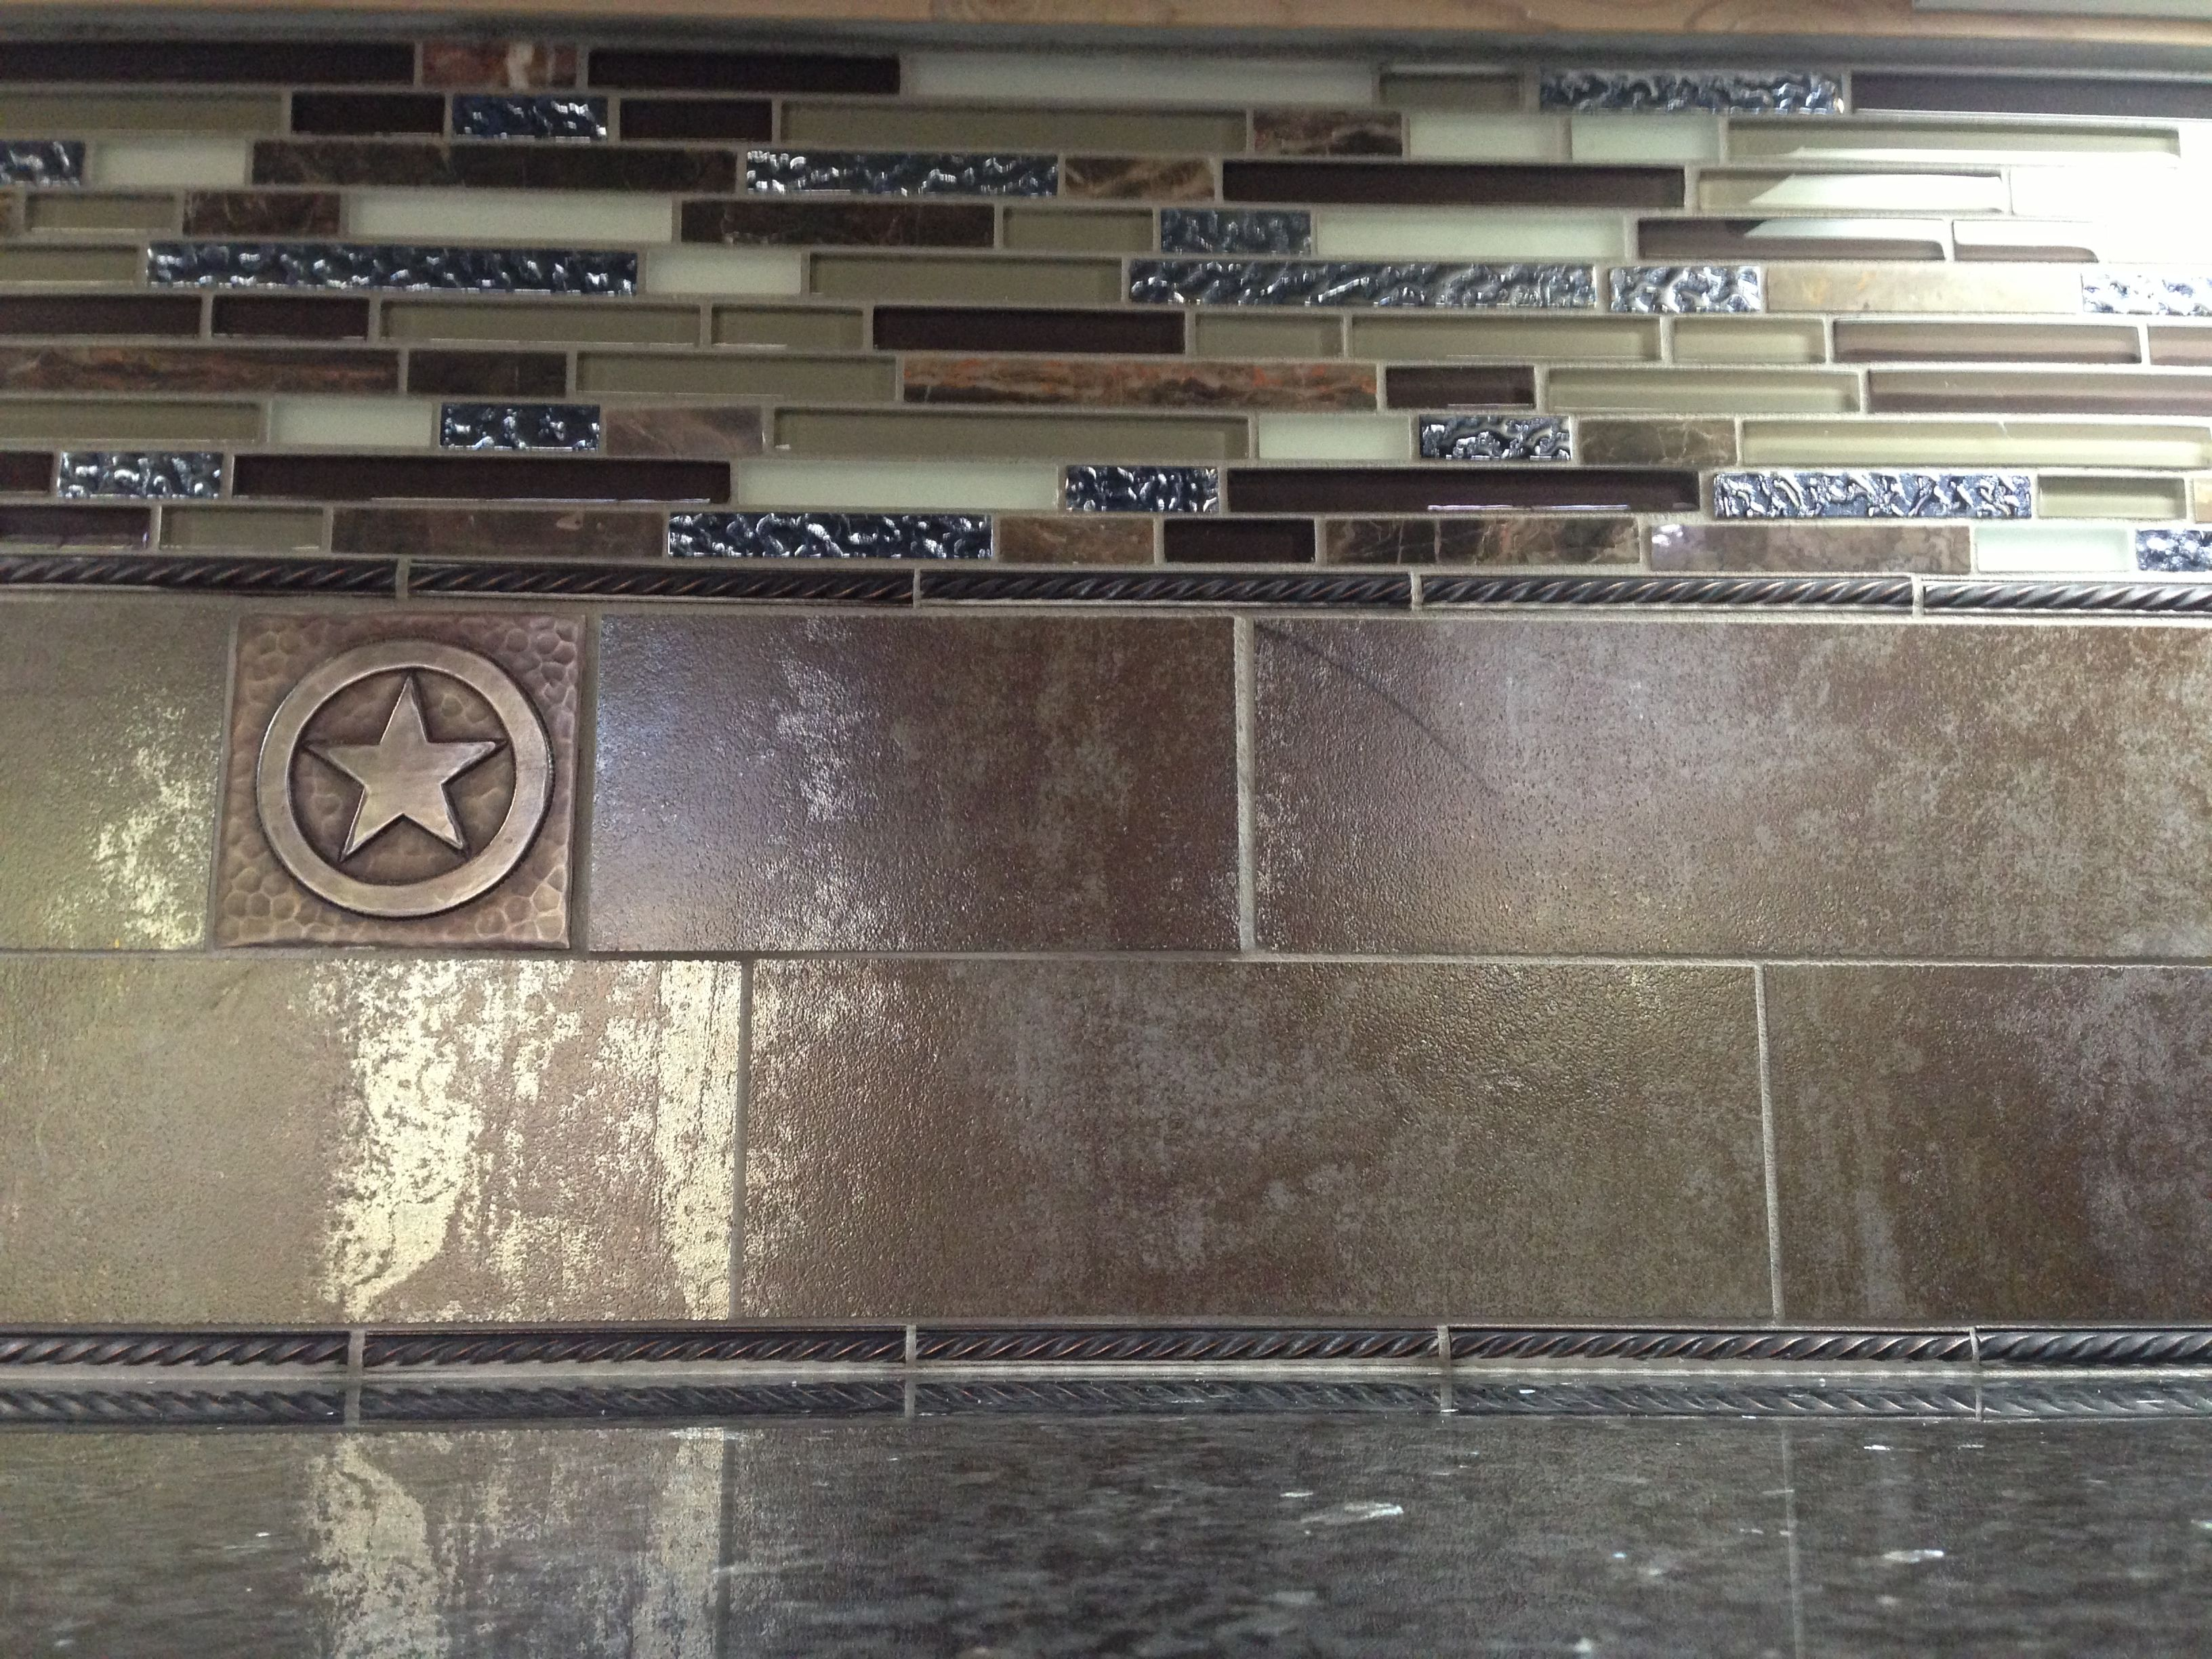 Another view of Elaine & Lee's Kitchen tile, glass tile and copper tile backsplash.